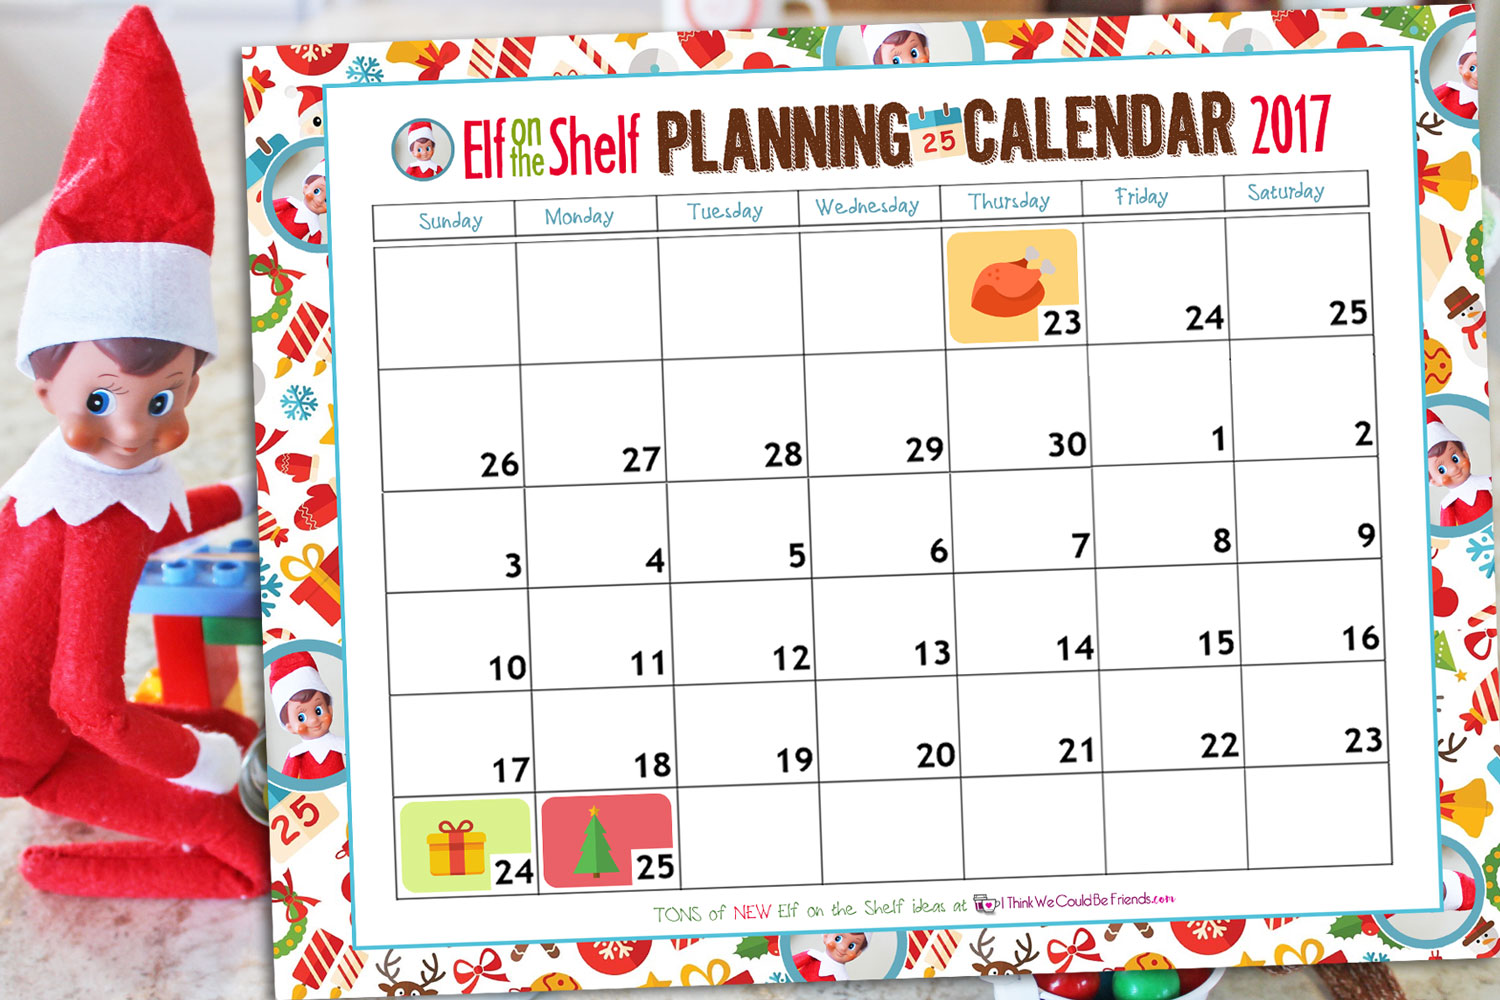 Free Printable Elf on the Shelf Planning Calendar 2017